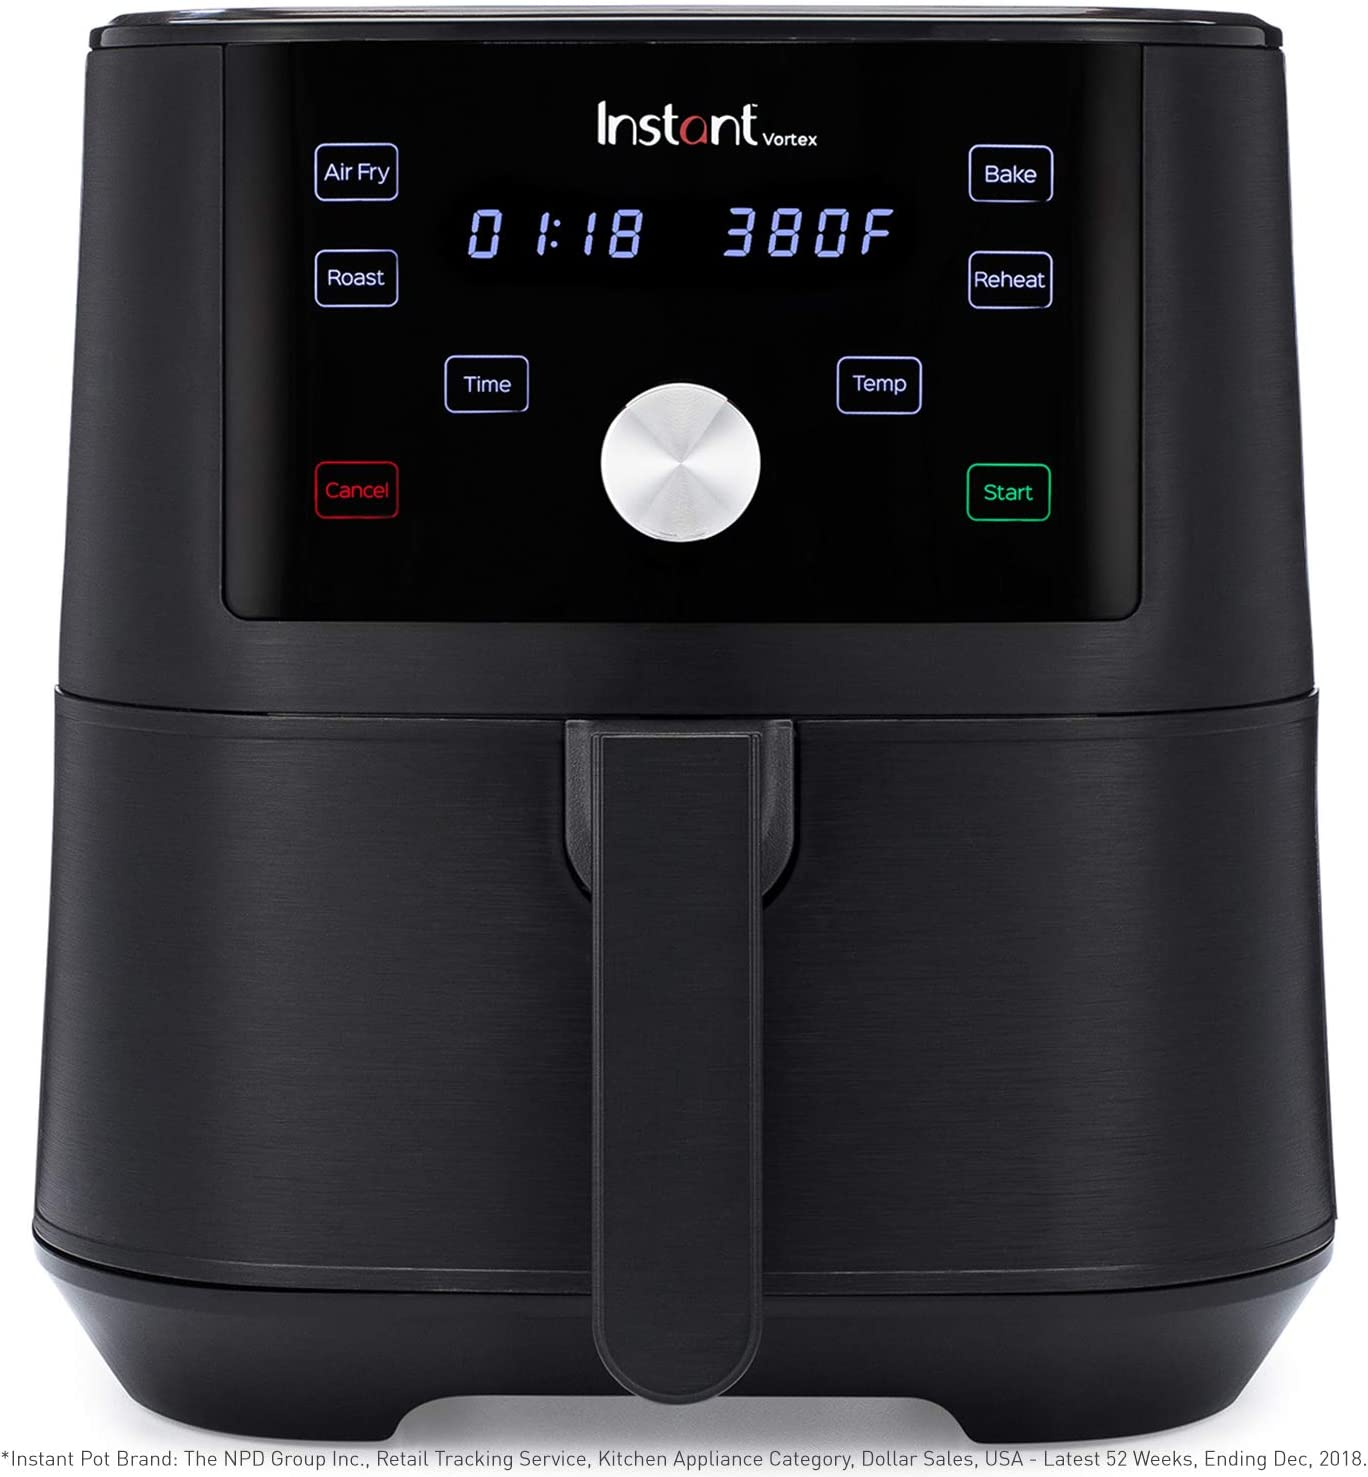 Instant Vortex 4-in-1 Air Fryer, 6 Quart, 4 One-Touch Programs, Air Fry, Roast, Bake, Reheat